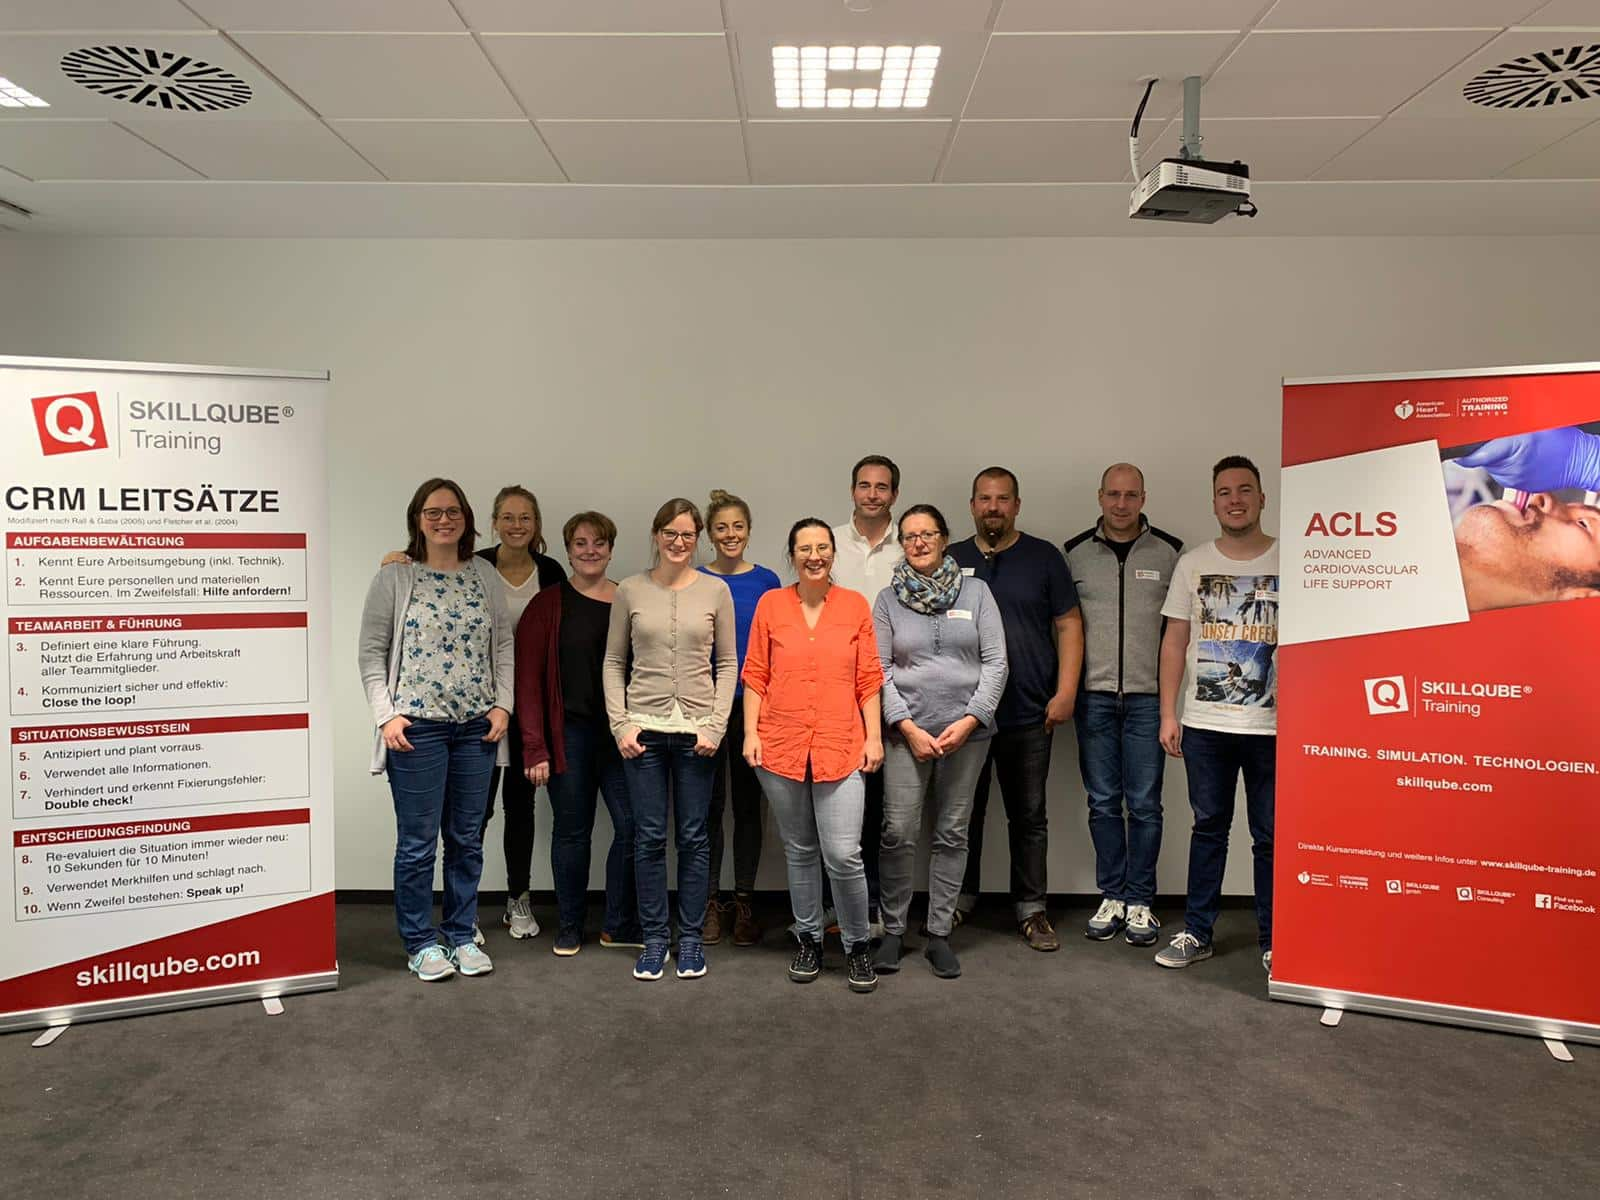 ACLS Provider & Refresher Kurs (AHA) in Bad Krozingen